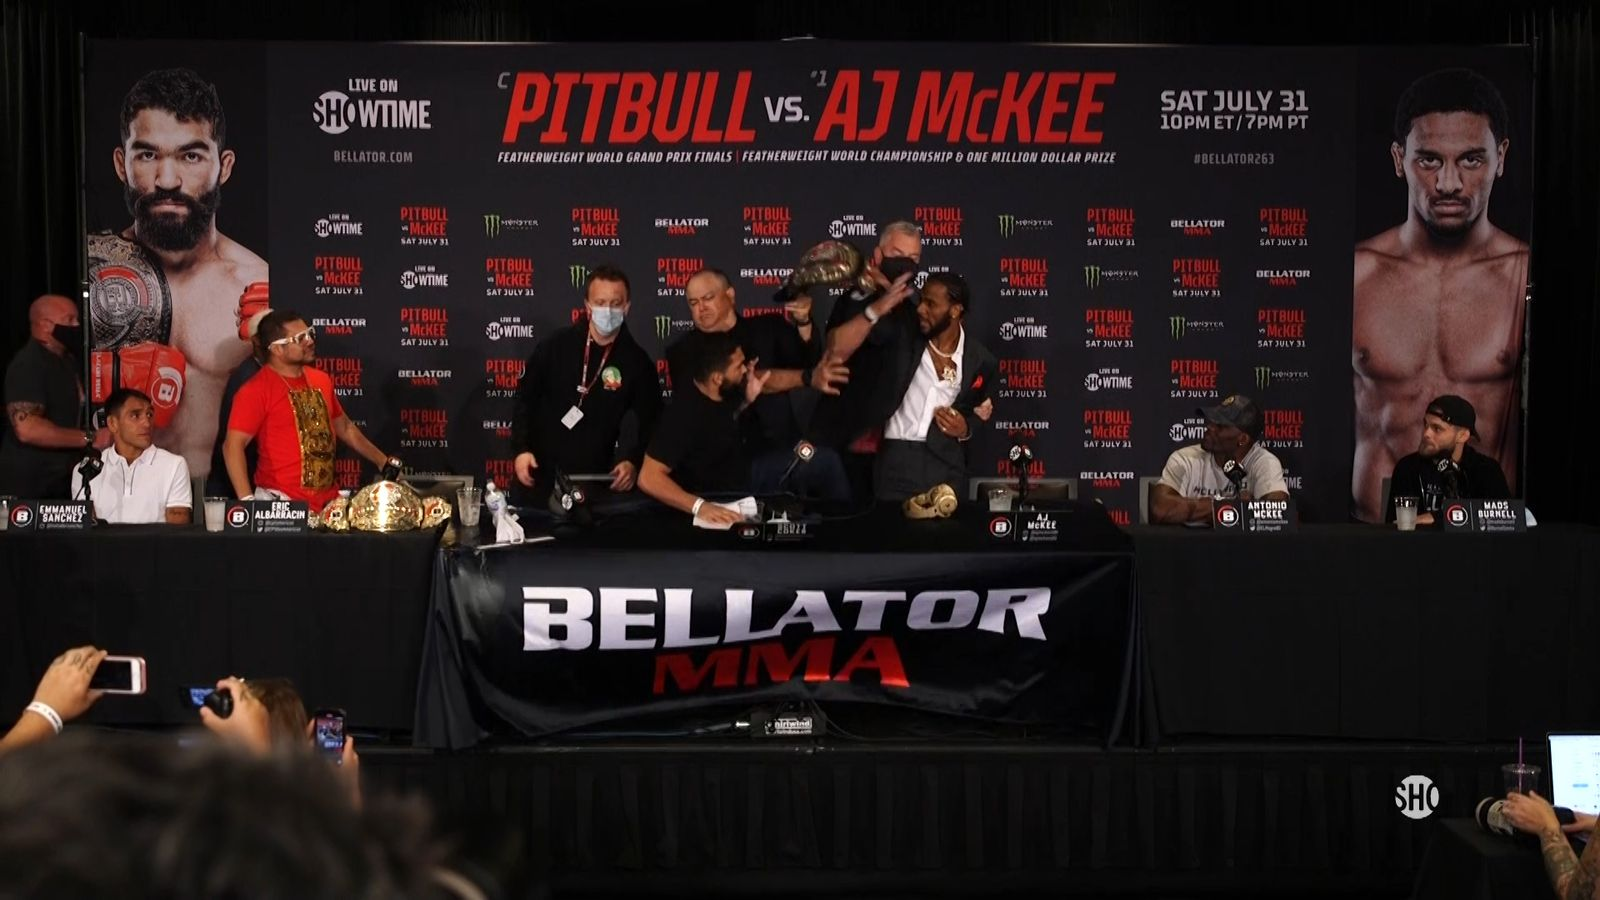 Tempers flare during Bellator press conference | MMA News ...